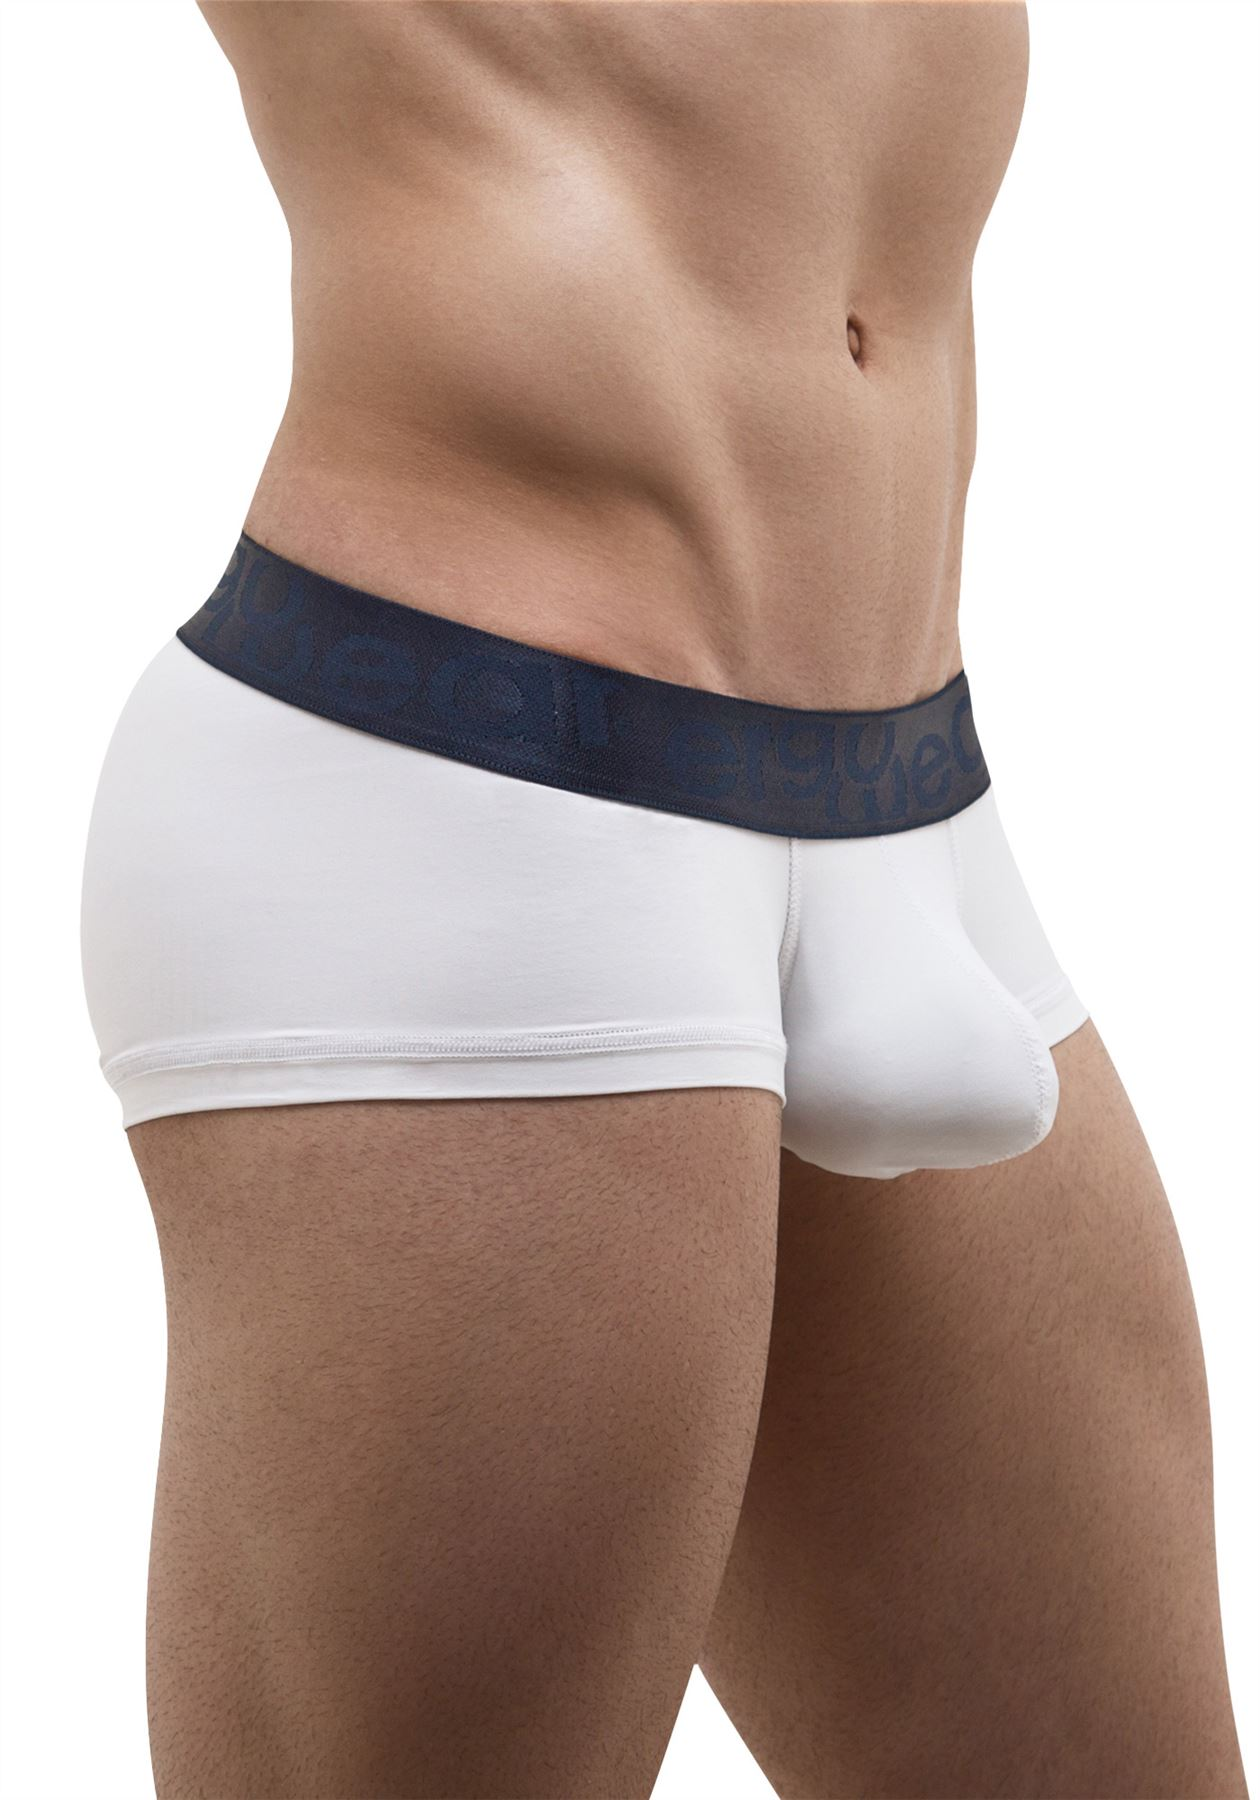 Ergowear Men/'s MAX XV Boxer Anatomical Design Short Trunk Hipster Supporting